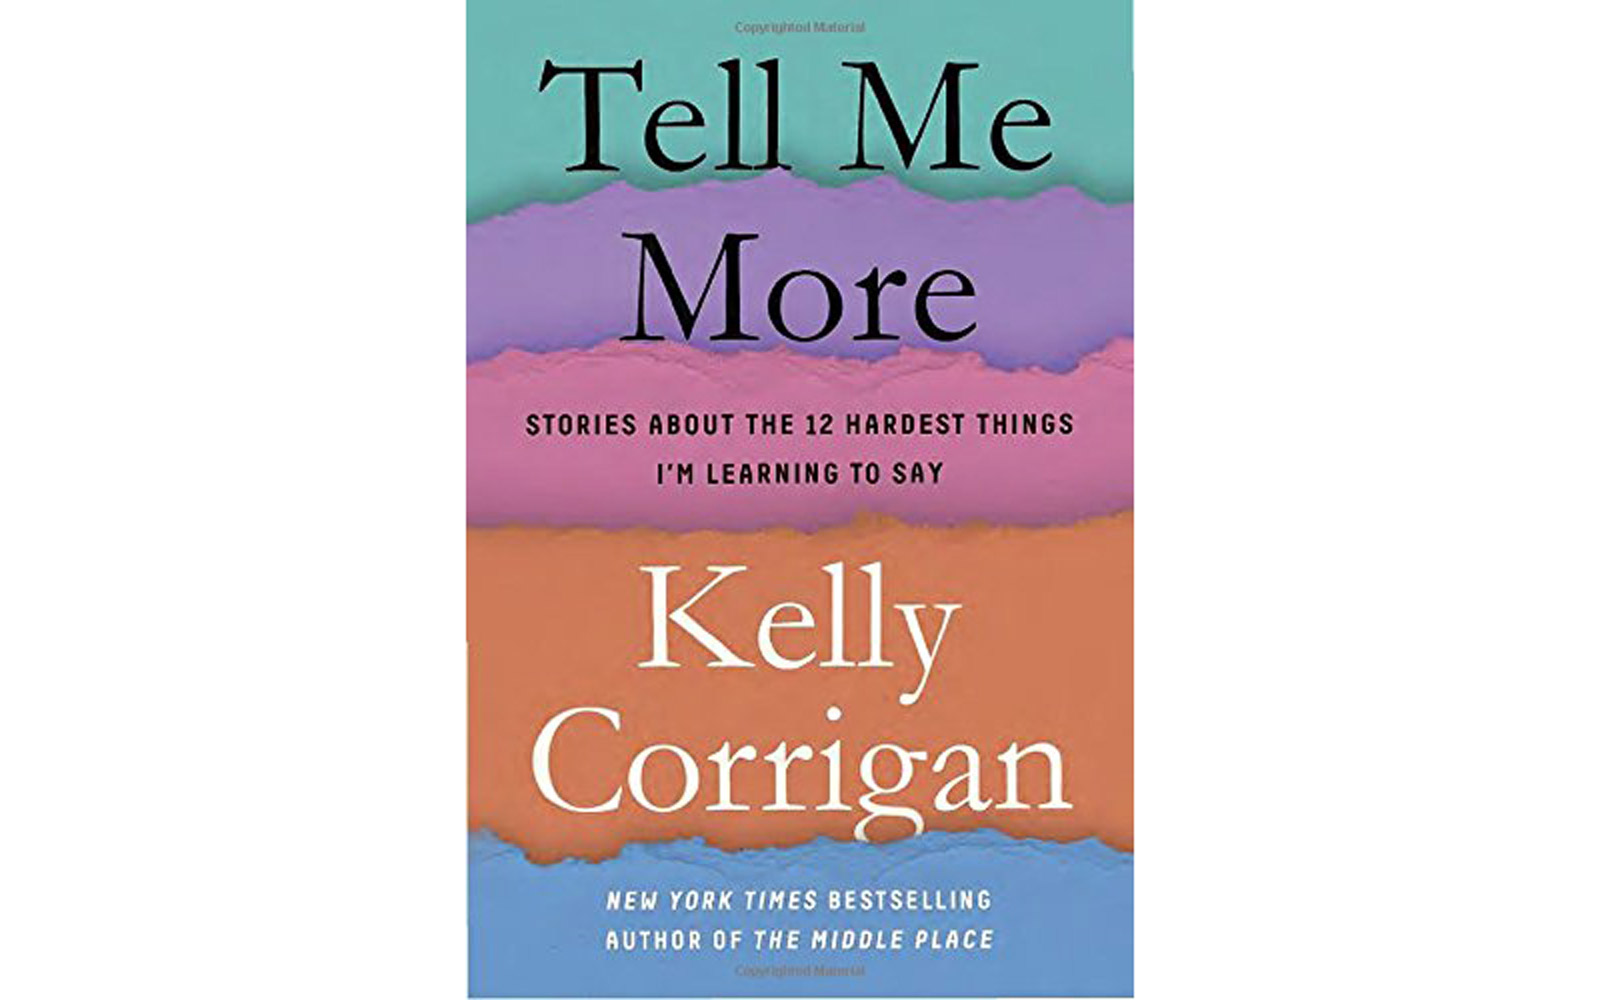 'Tell Me More' by Kelly Corrigan